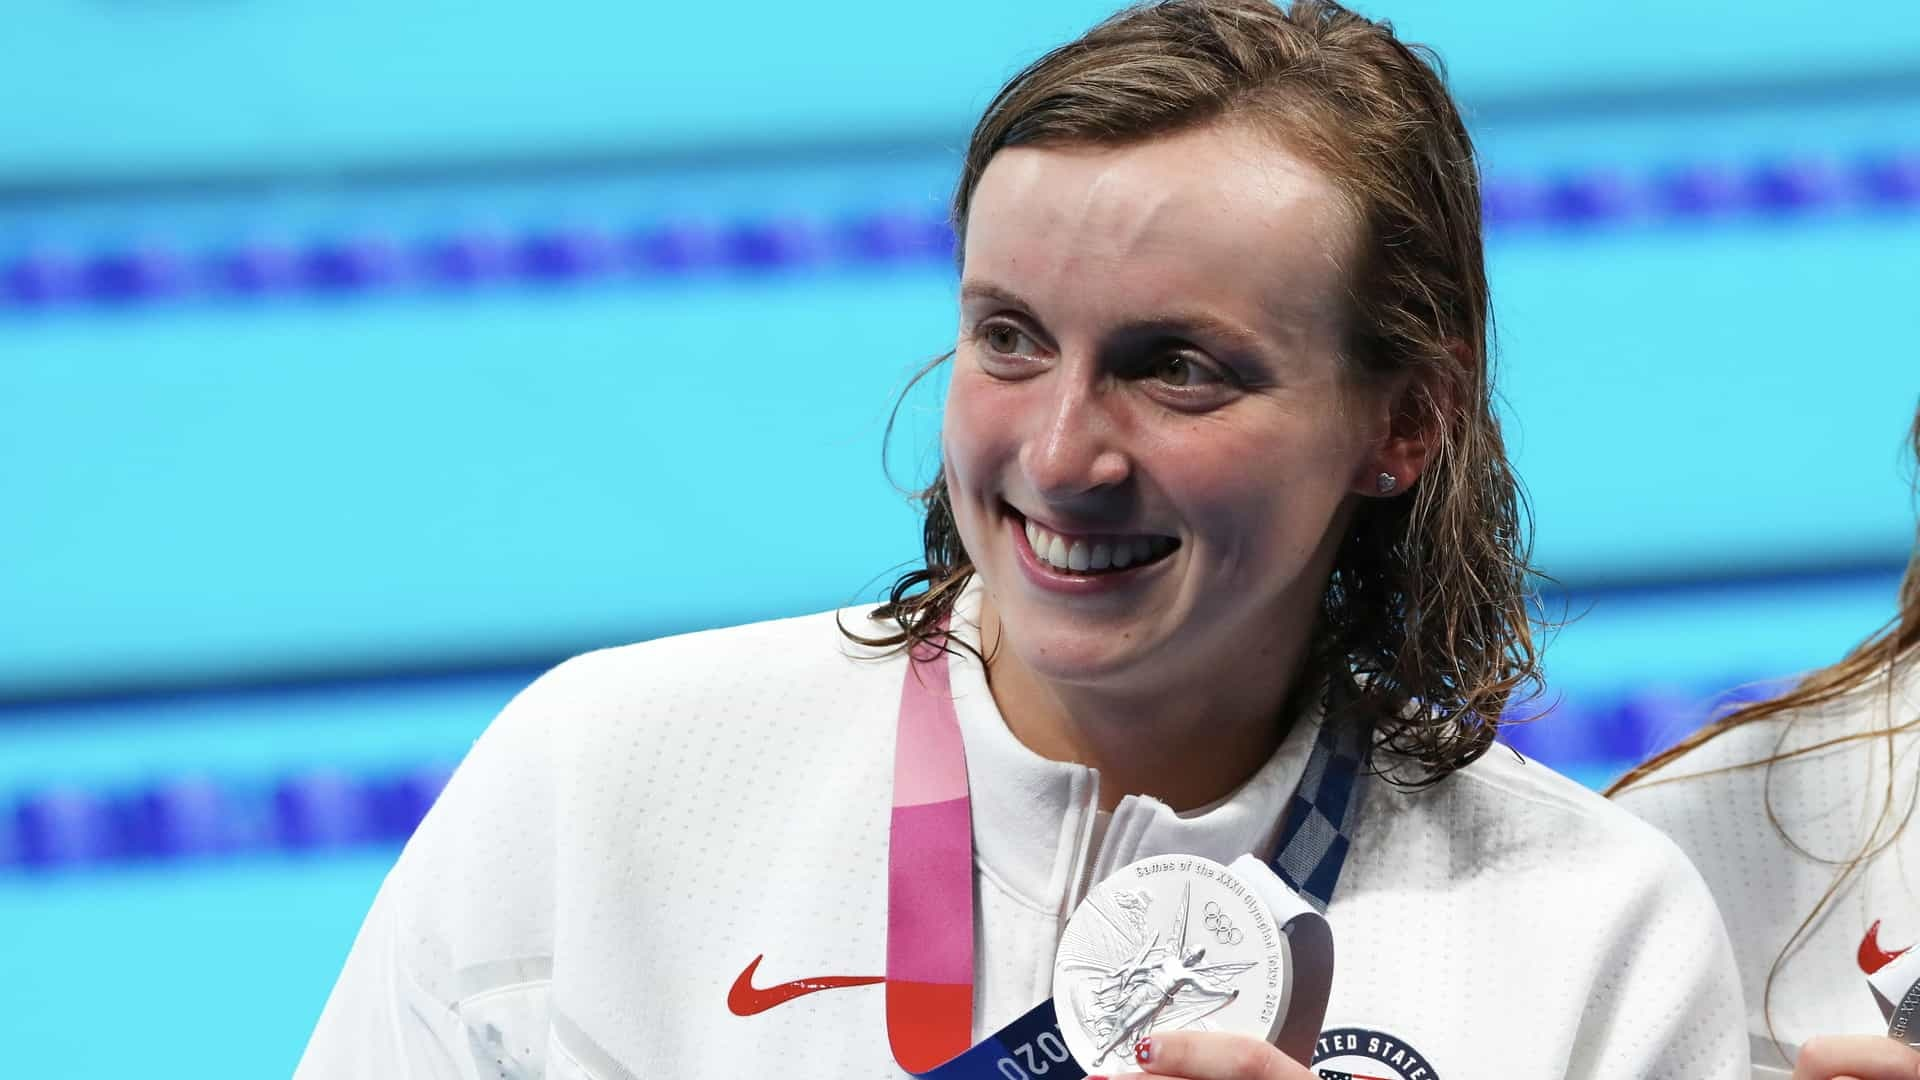 Katie Ledecky proudly shows off the silver medal she earned in the 4x200m freestyle relay at the 2020 Tokyo Olympic Games.